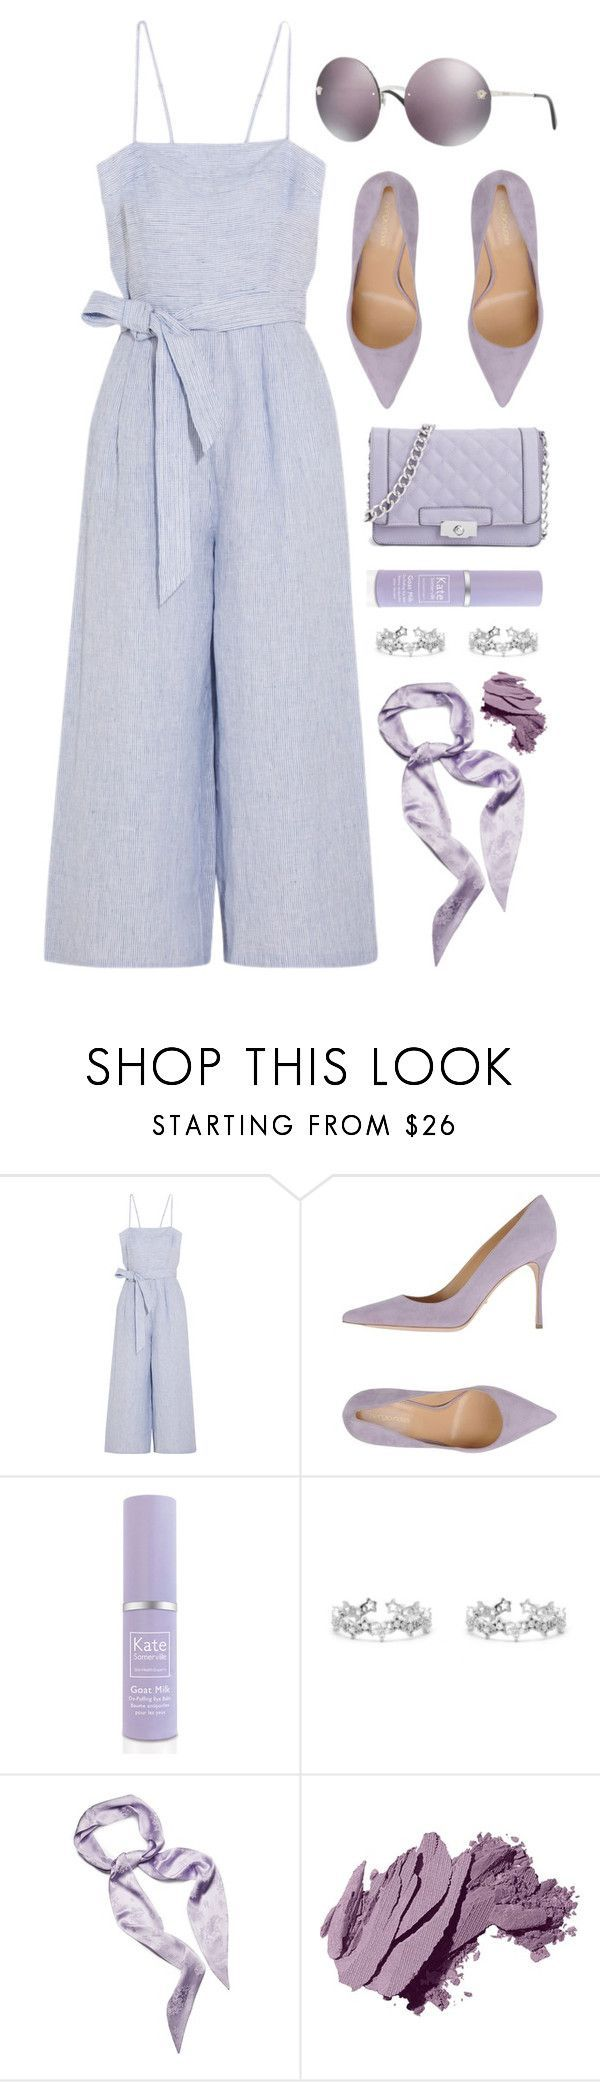 """Purple"" by smartbuyglasses-uk ❤ liked on Polyvore featuring J.Crew, Sergio Rossi, Kate Somerville, Magda Butrym, Bobbi Brown Cosmetics, Versace and purple"